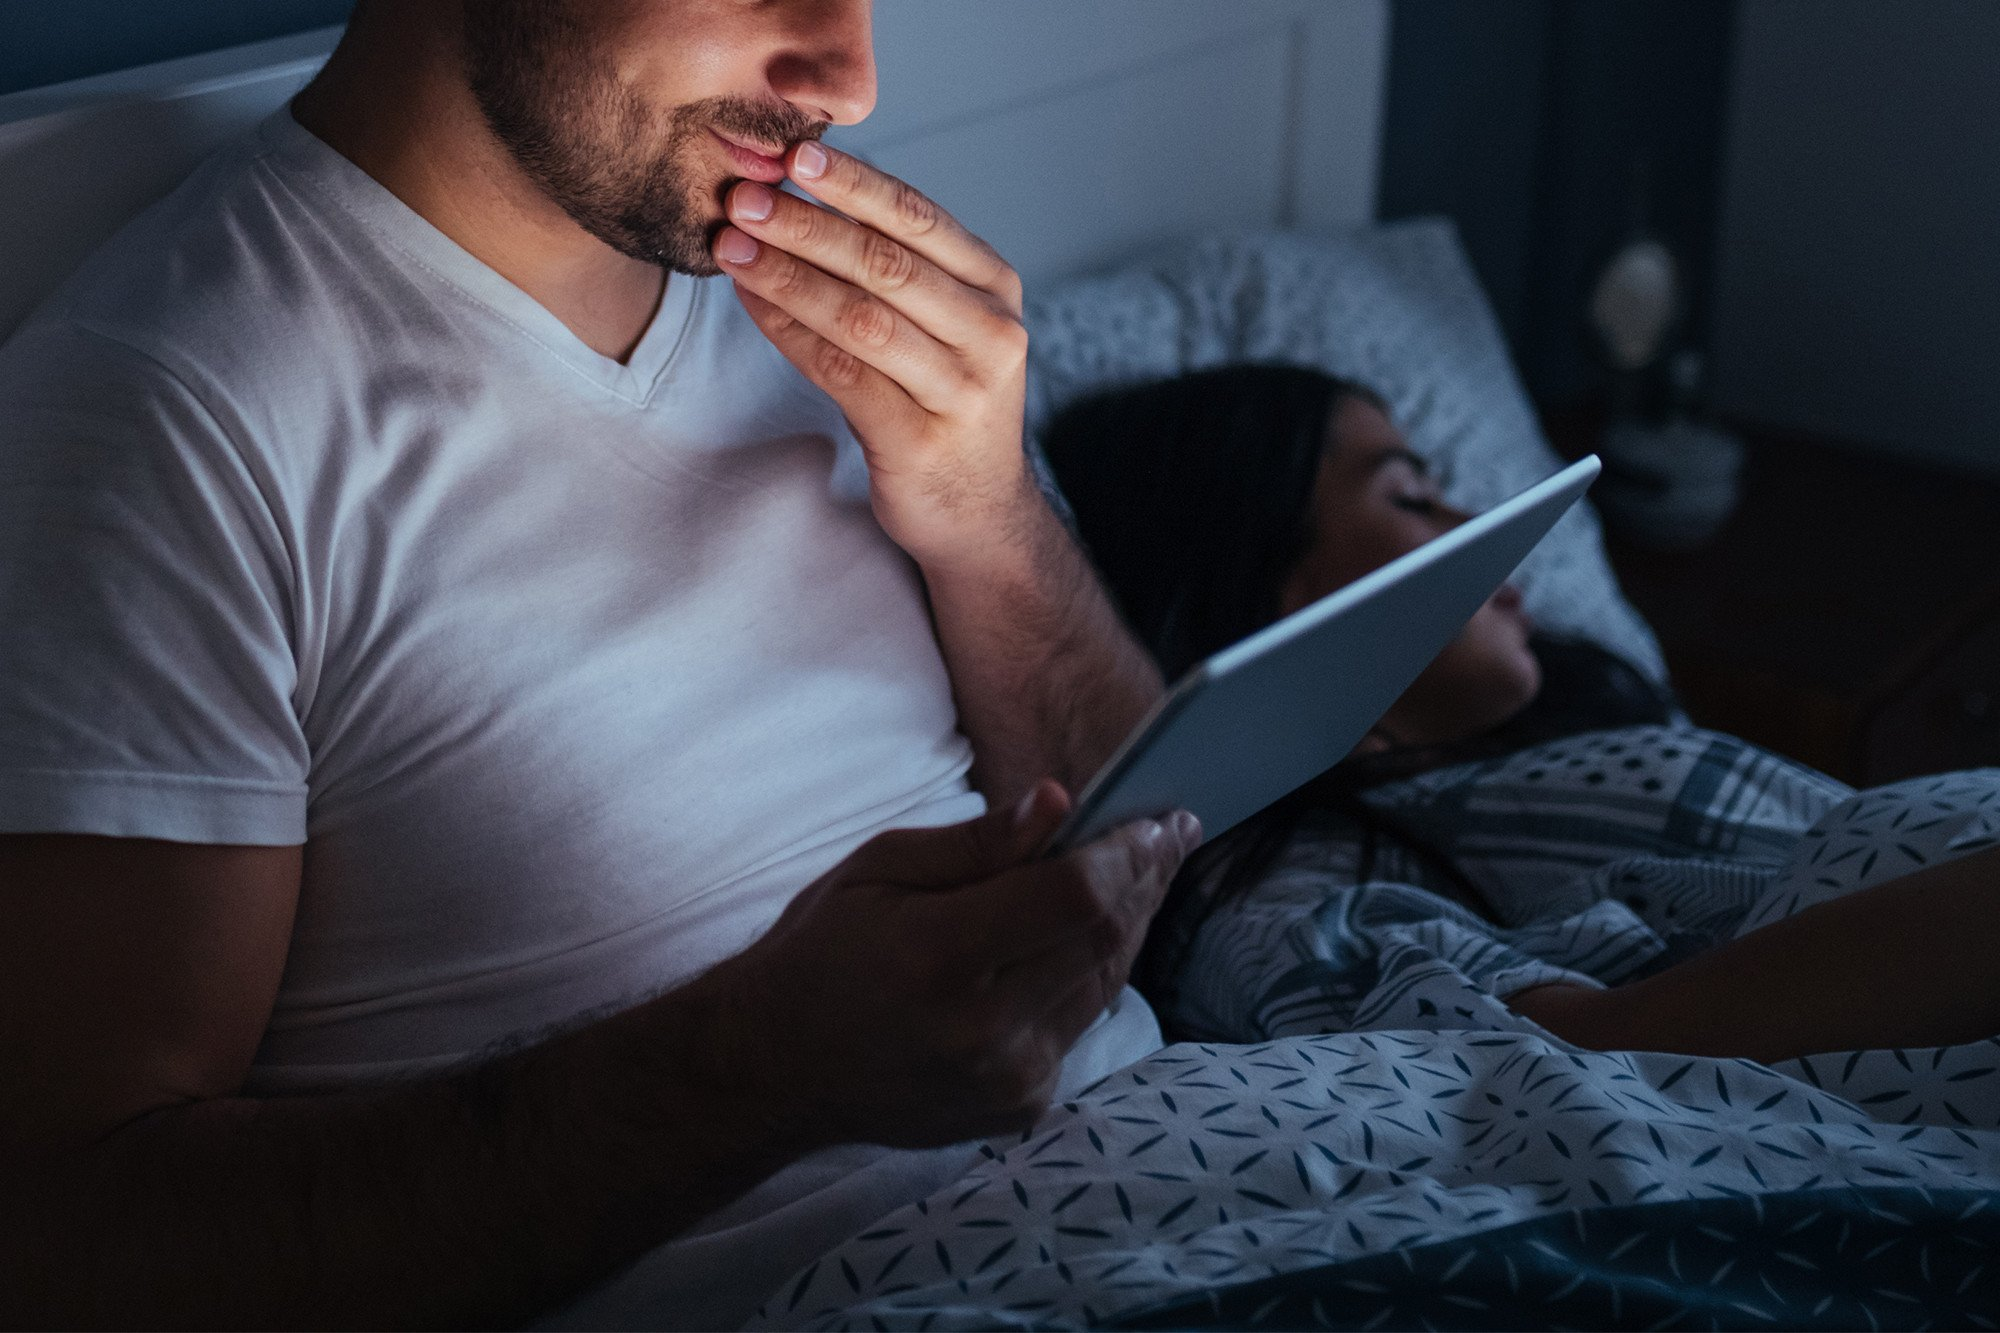 My husband's porn addiction destroyed our marriage